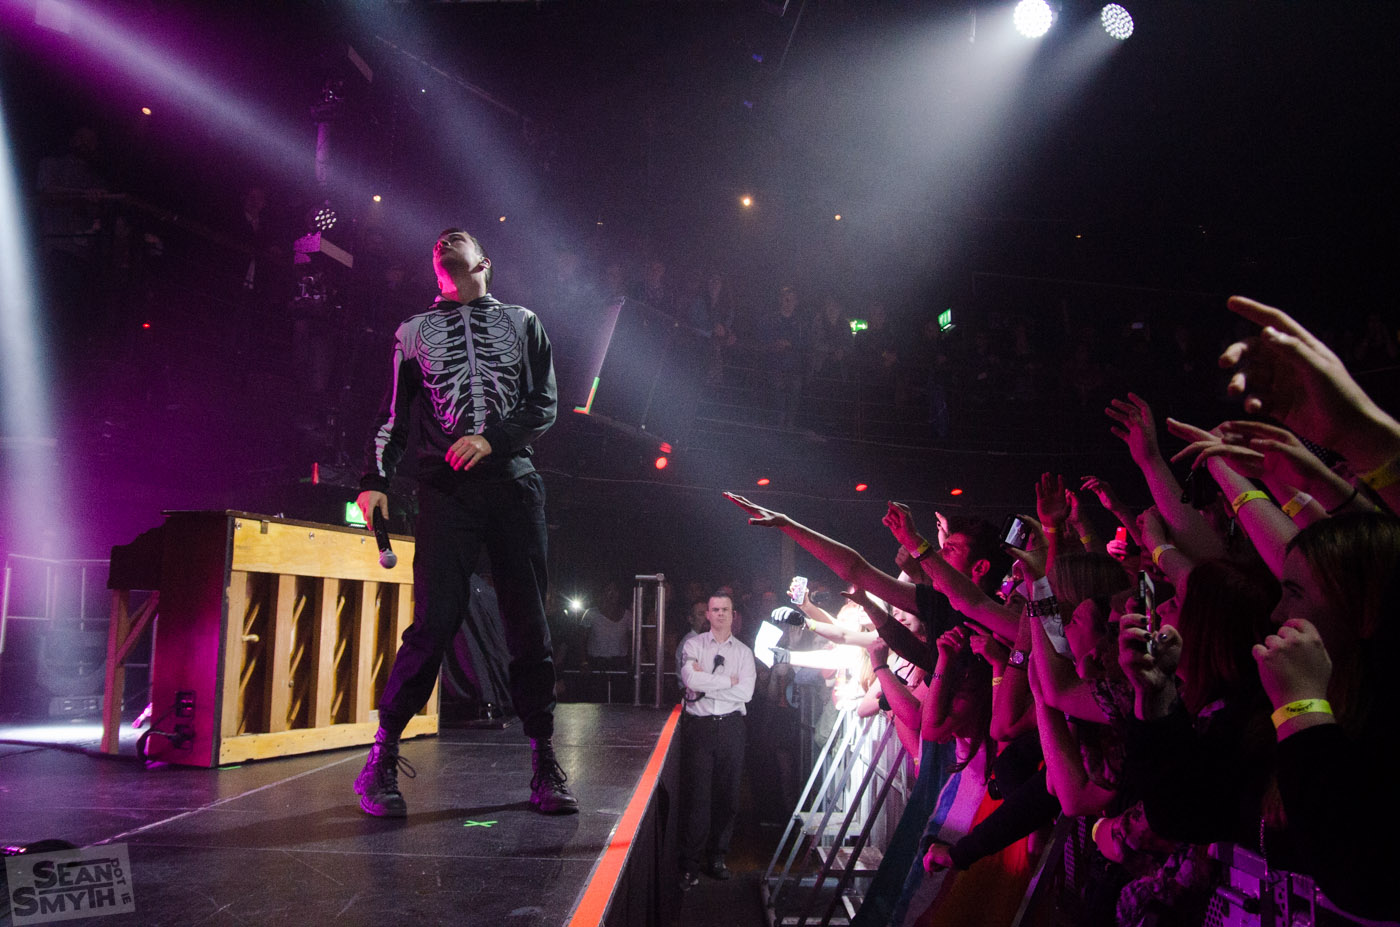 twenty-one-pilots-at-the-academy-by-sean-smyth-16-11-14-36-of-41_15186859134_o